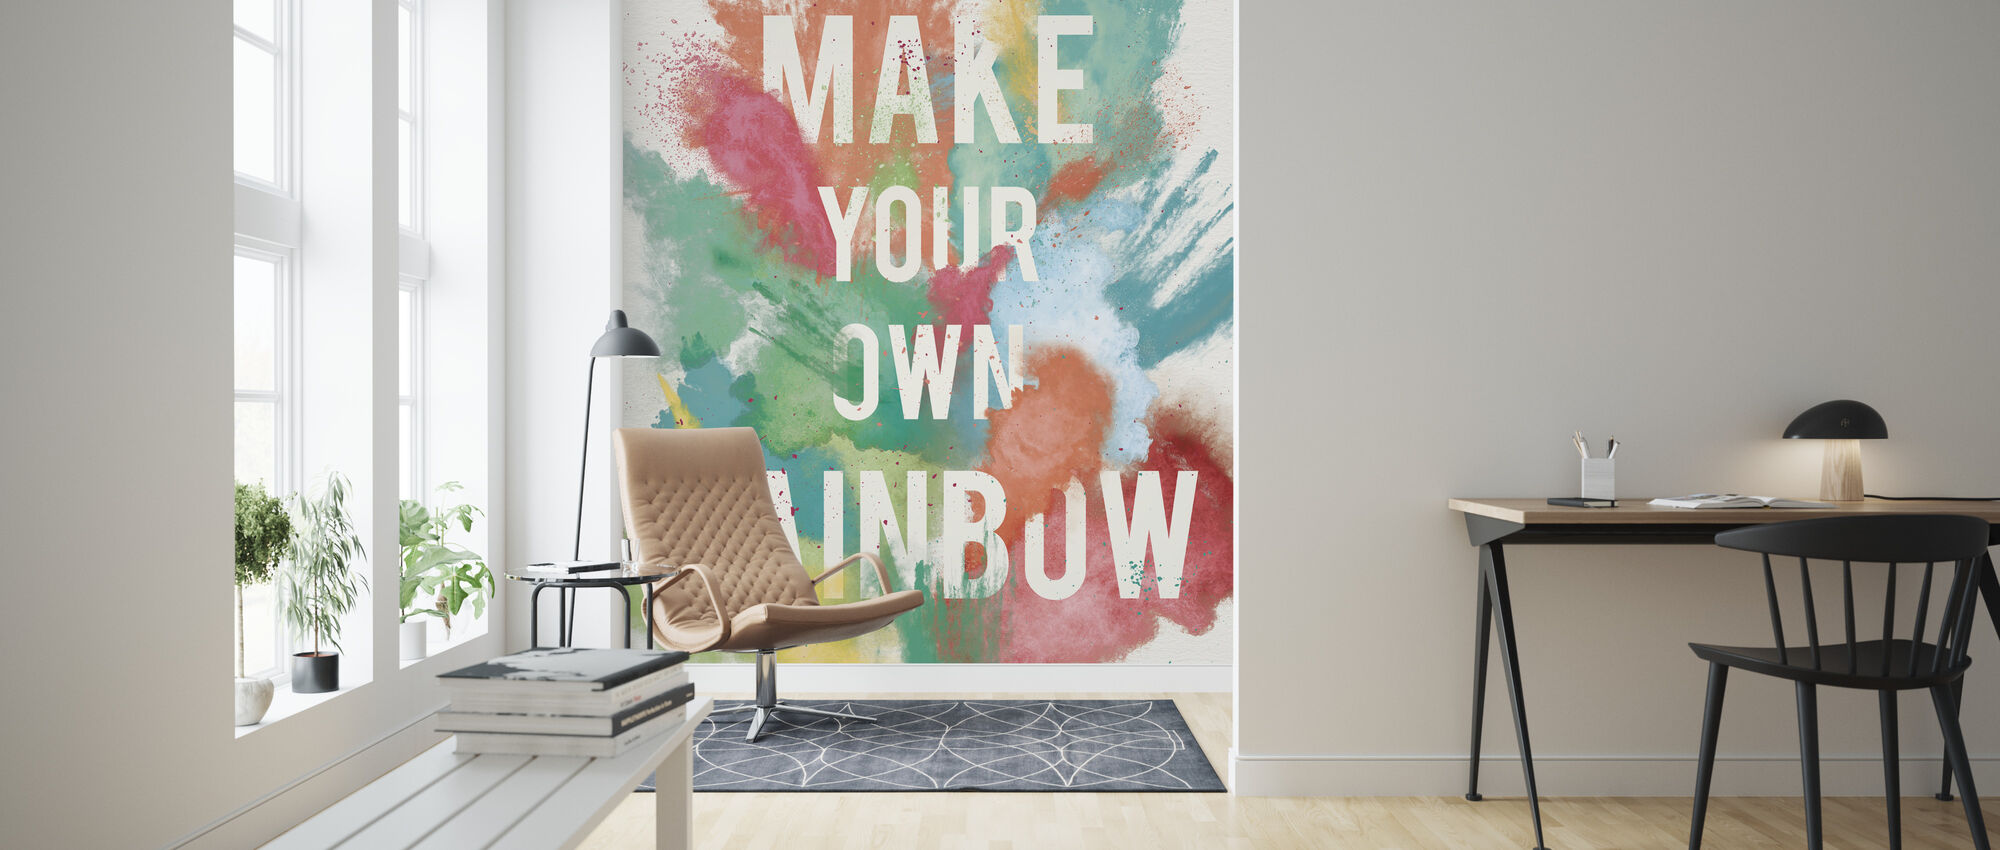 Make Your Own Rainbow - Wallpaper - Living Room